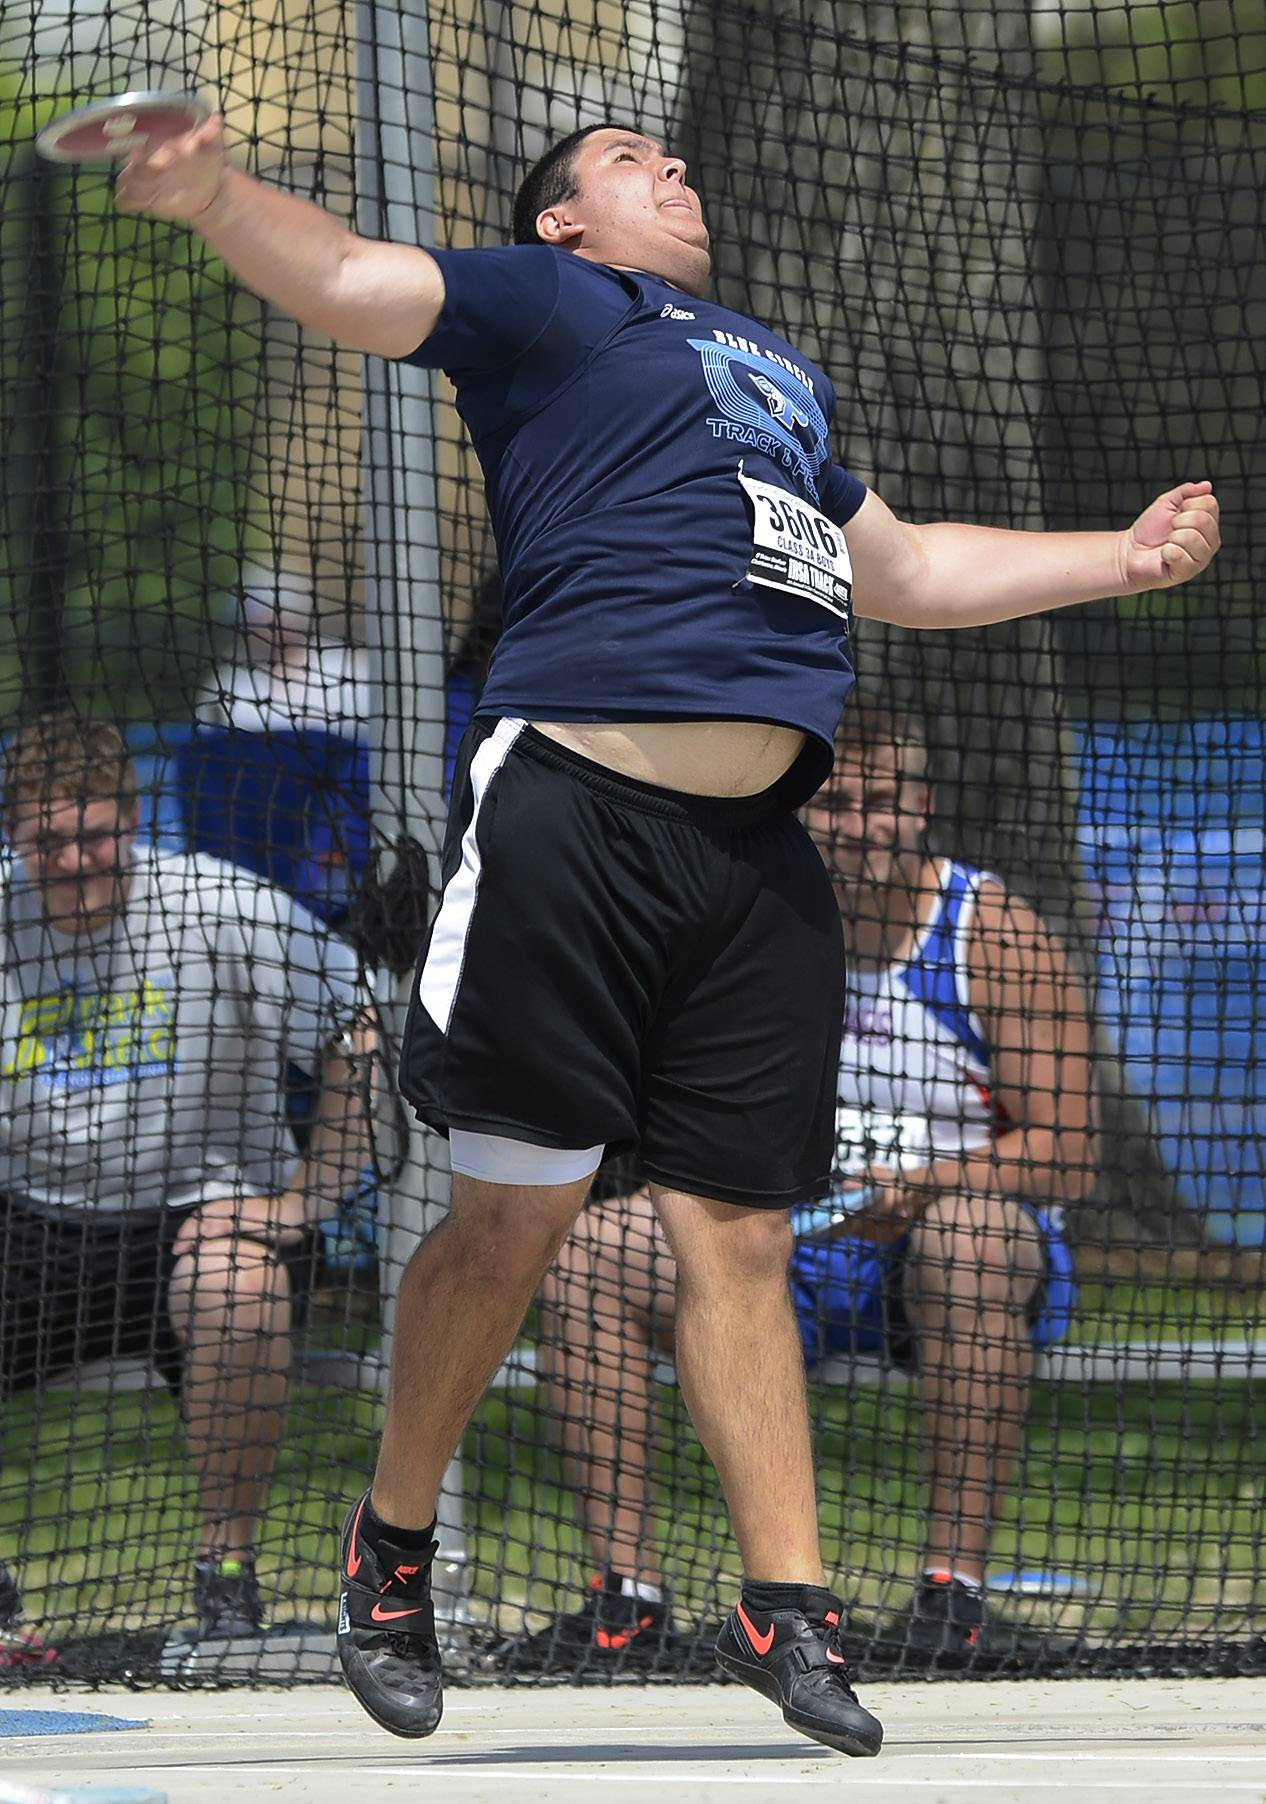 Prospect's Justin Phillips throws the discus during the Class 3A boys track and field state preliminaries in Charleston on Friday.